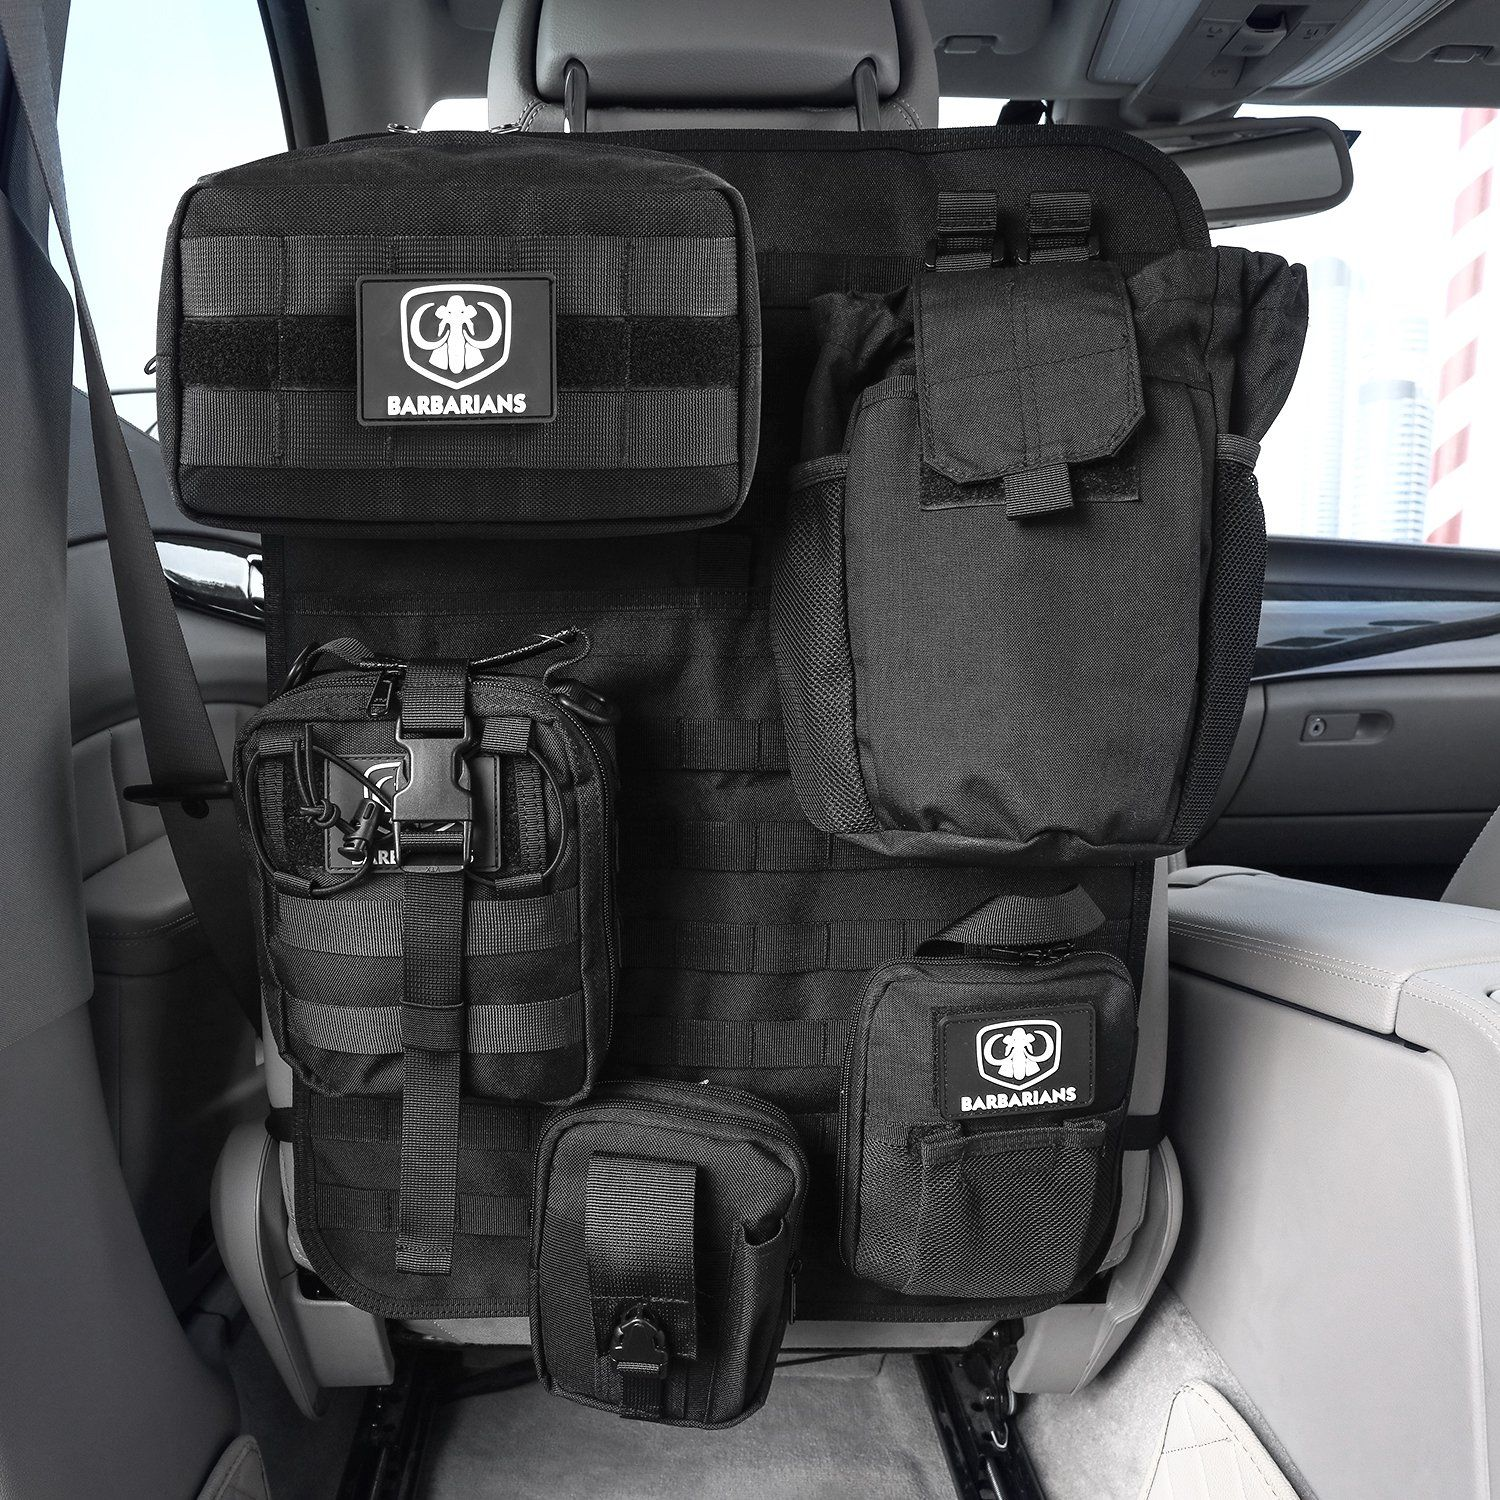 Barbarians Car Seat Back Organizer Tactical MOLLE Panel